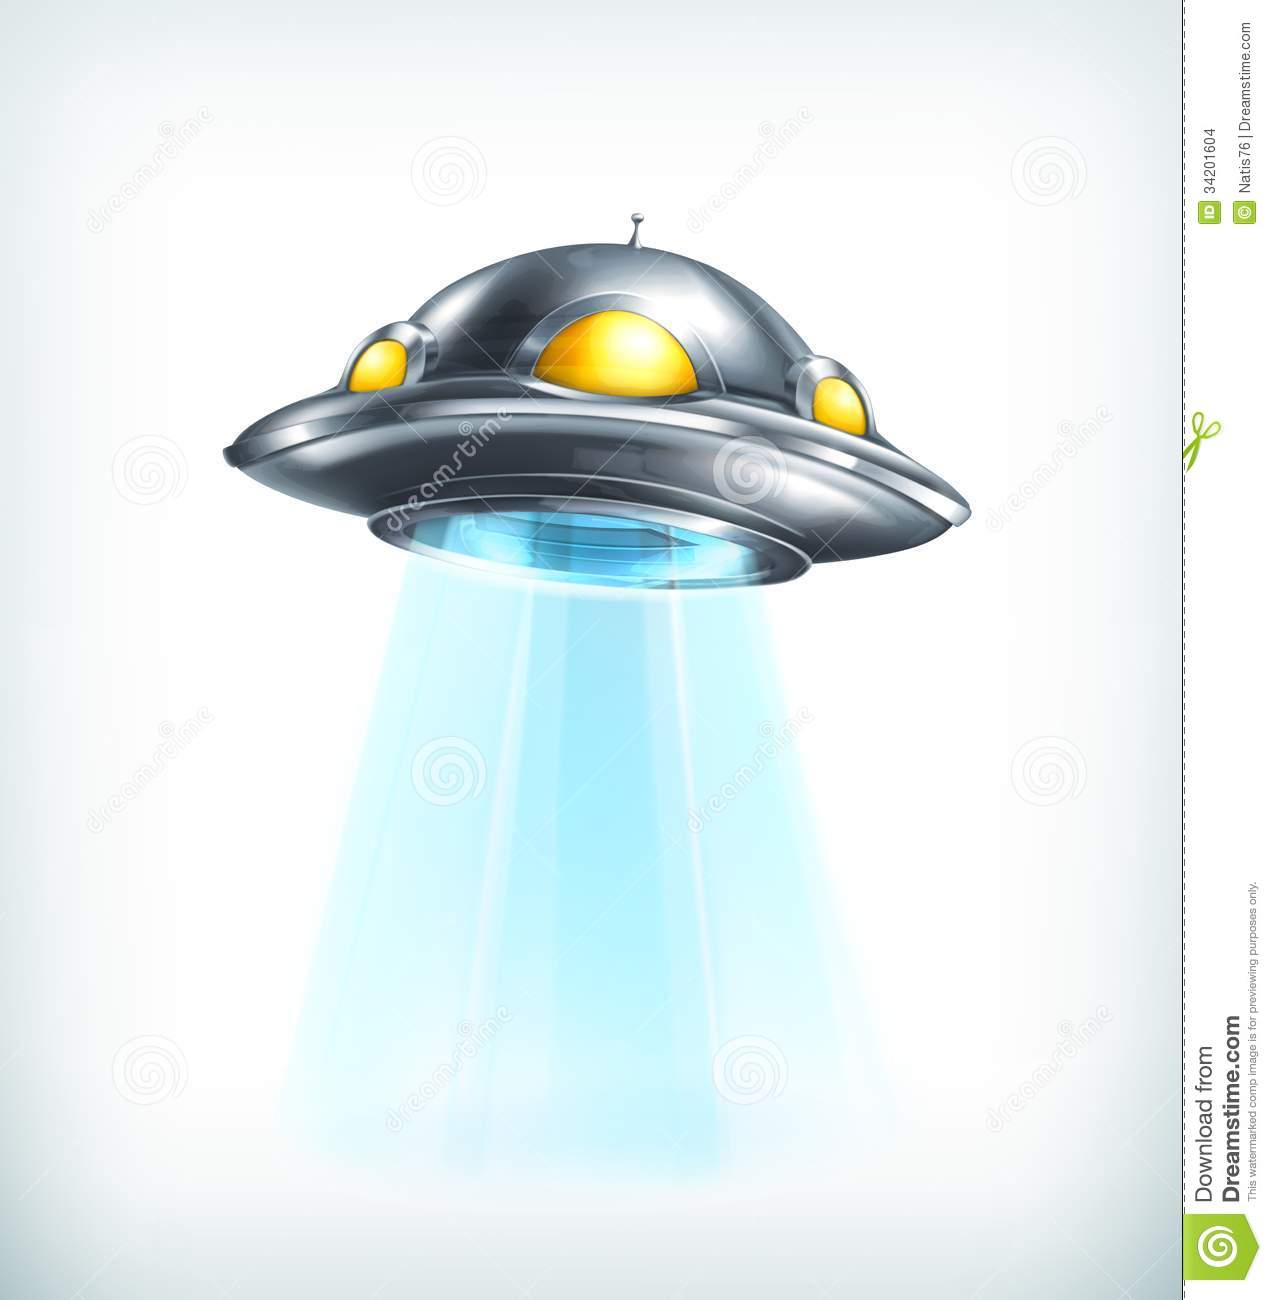 UFO icon, illustration on white background.